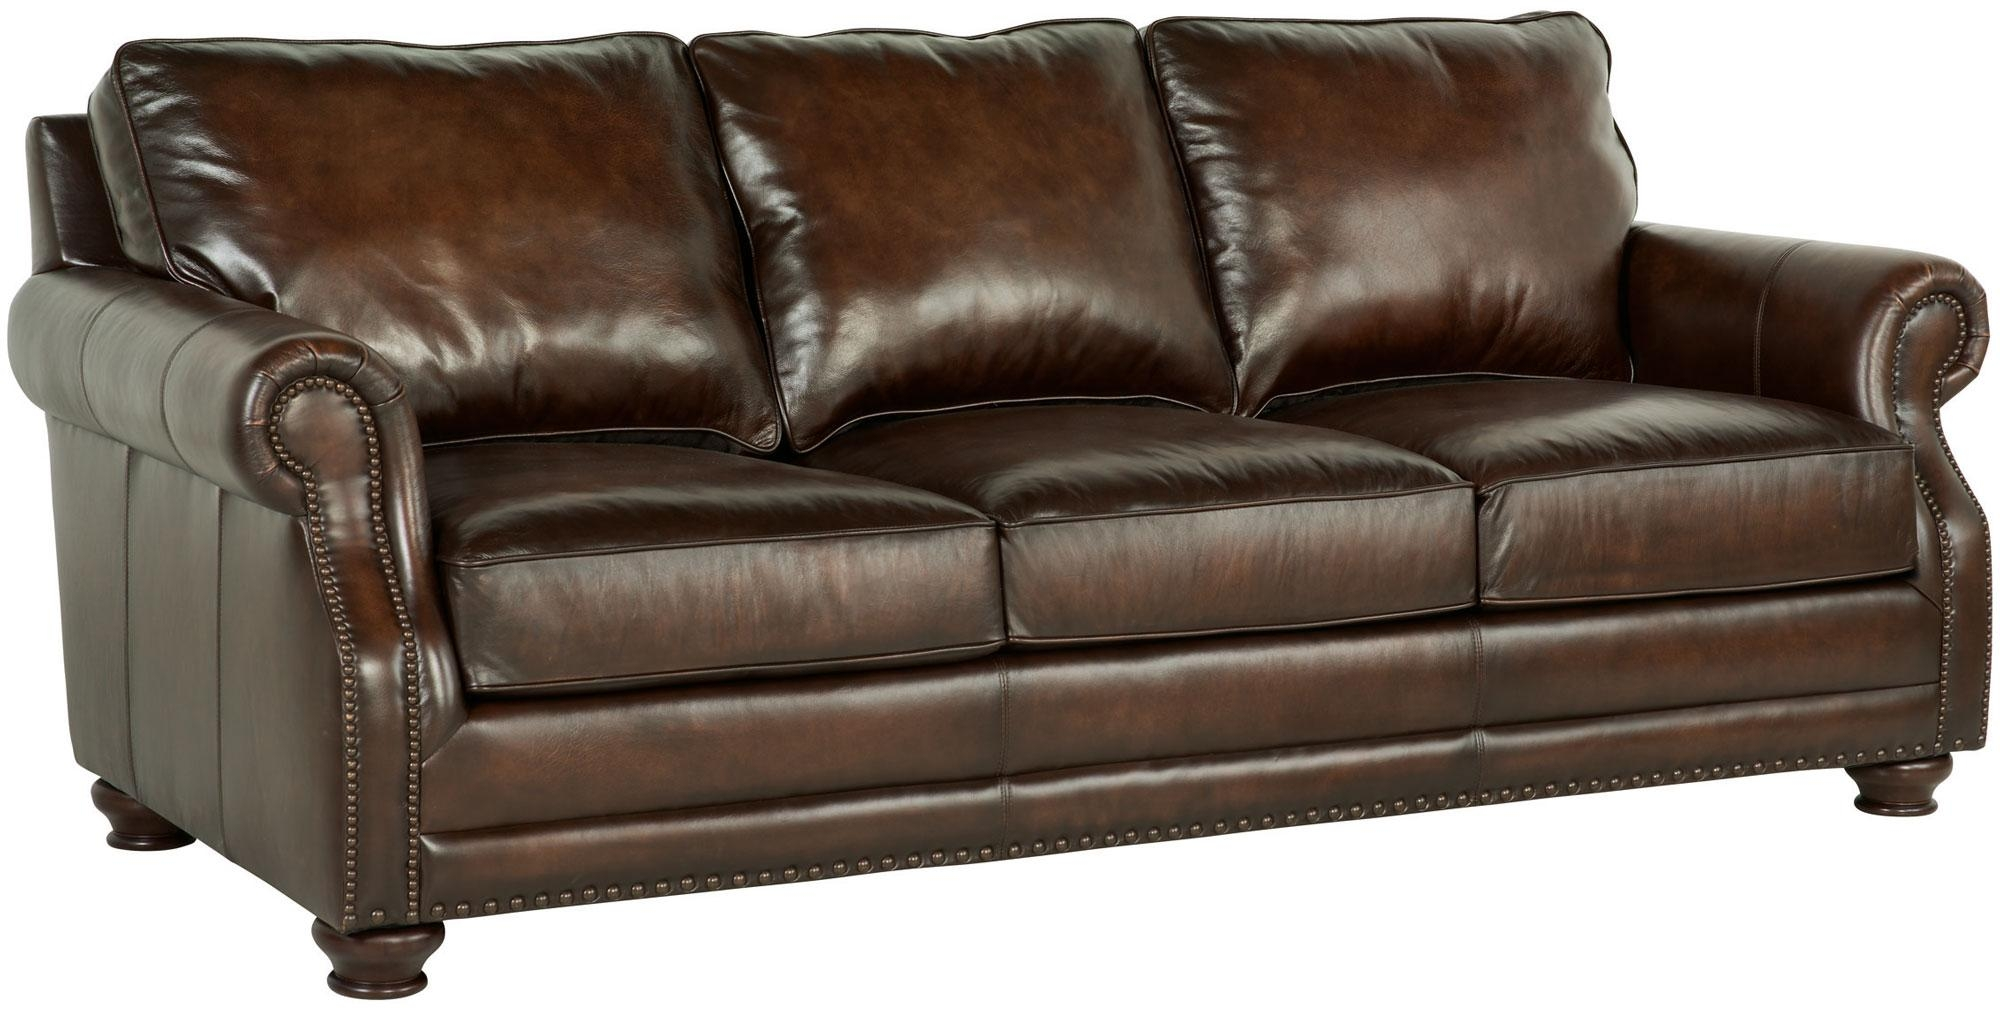 Furniture: Bernhardt Sofa | Sofa Bernhardt | Bernhardt Foster Sofa Regarding Foster Leather Sofas (Image 15 of 20)